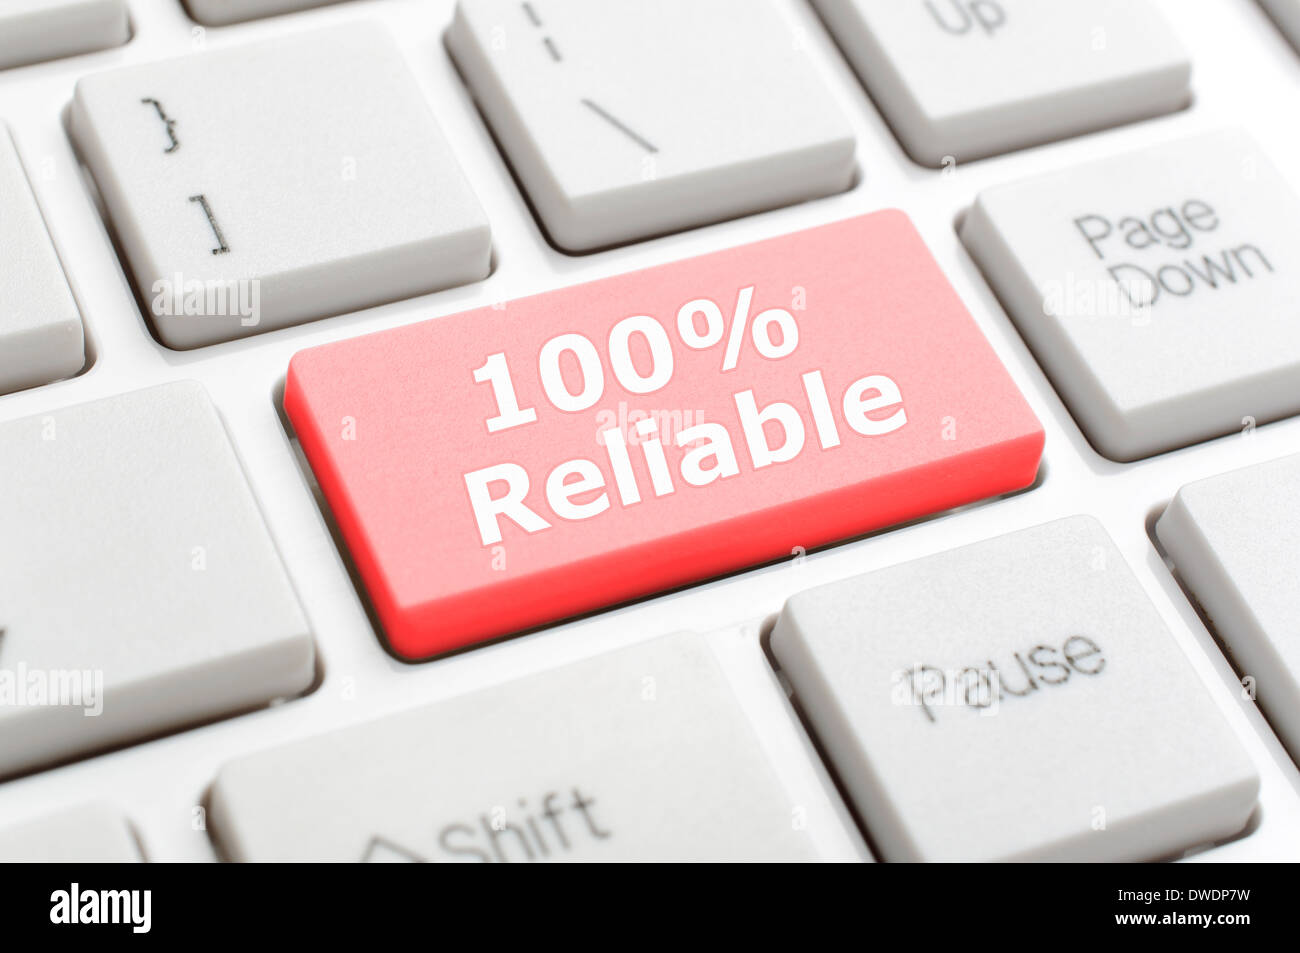 One hundred percent reliable on keyboard - Stock Image